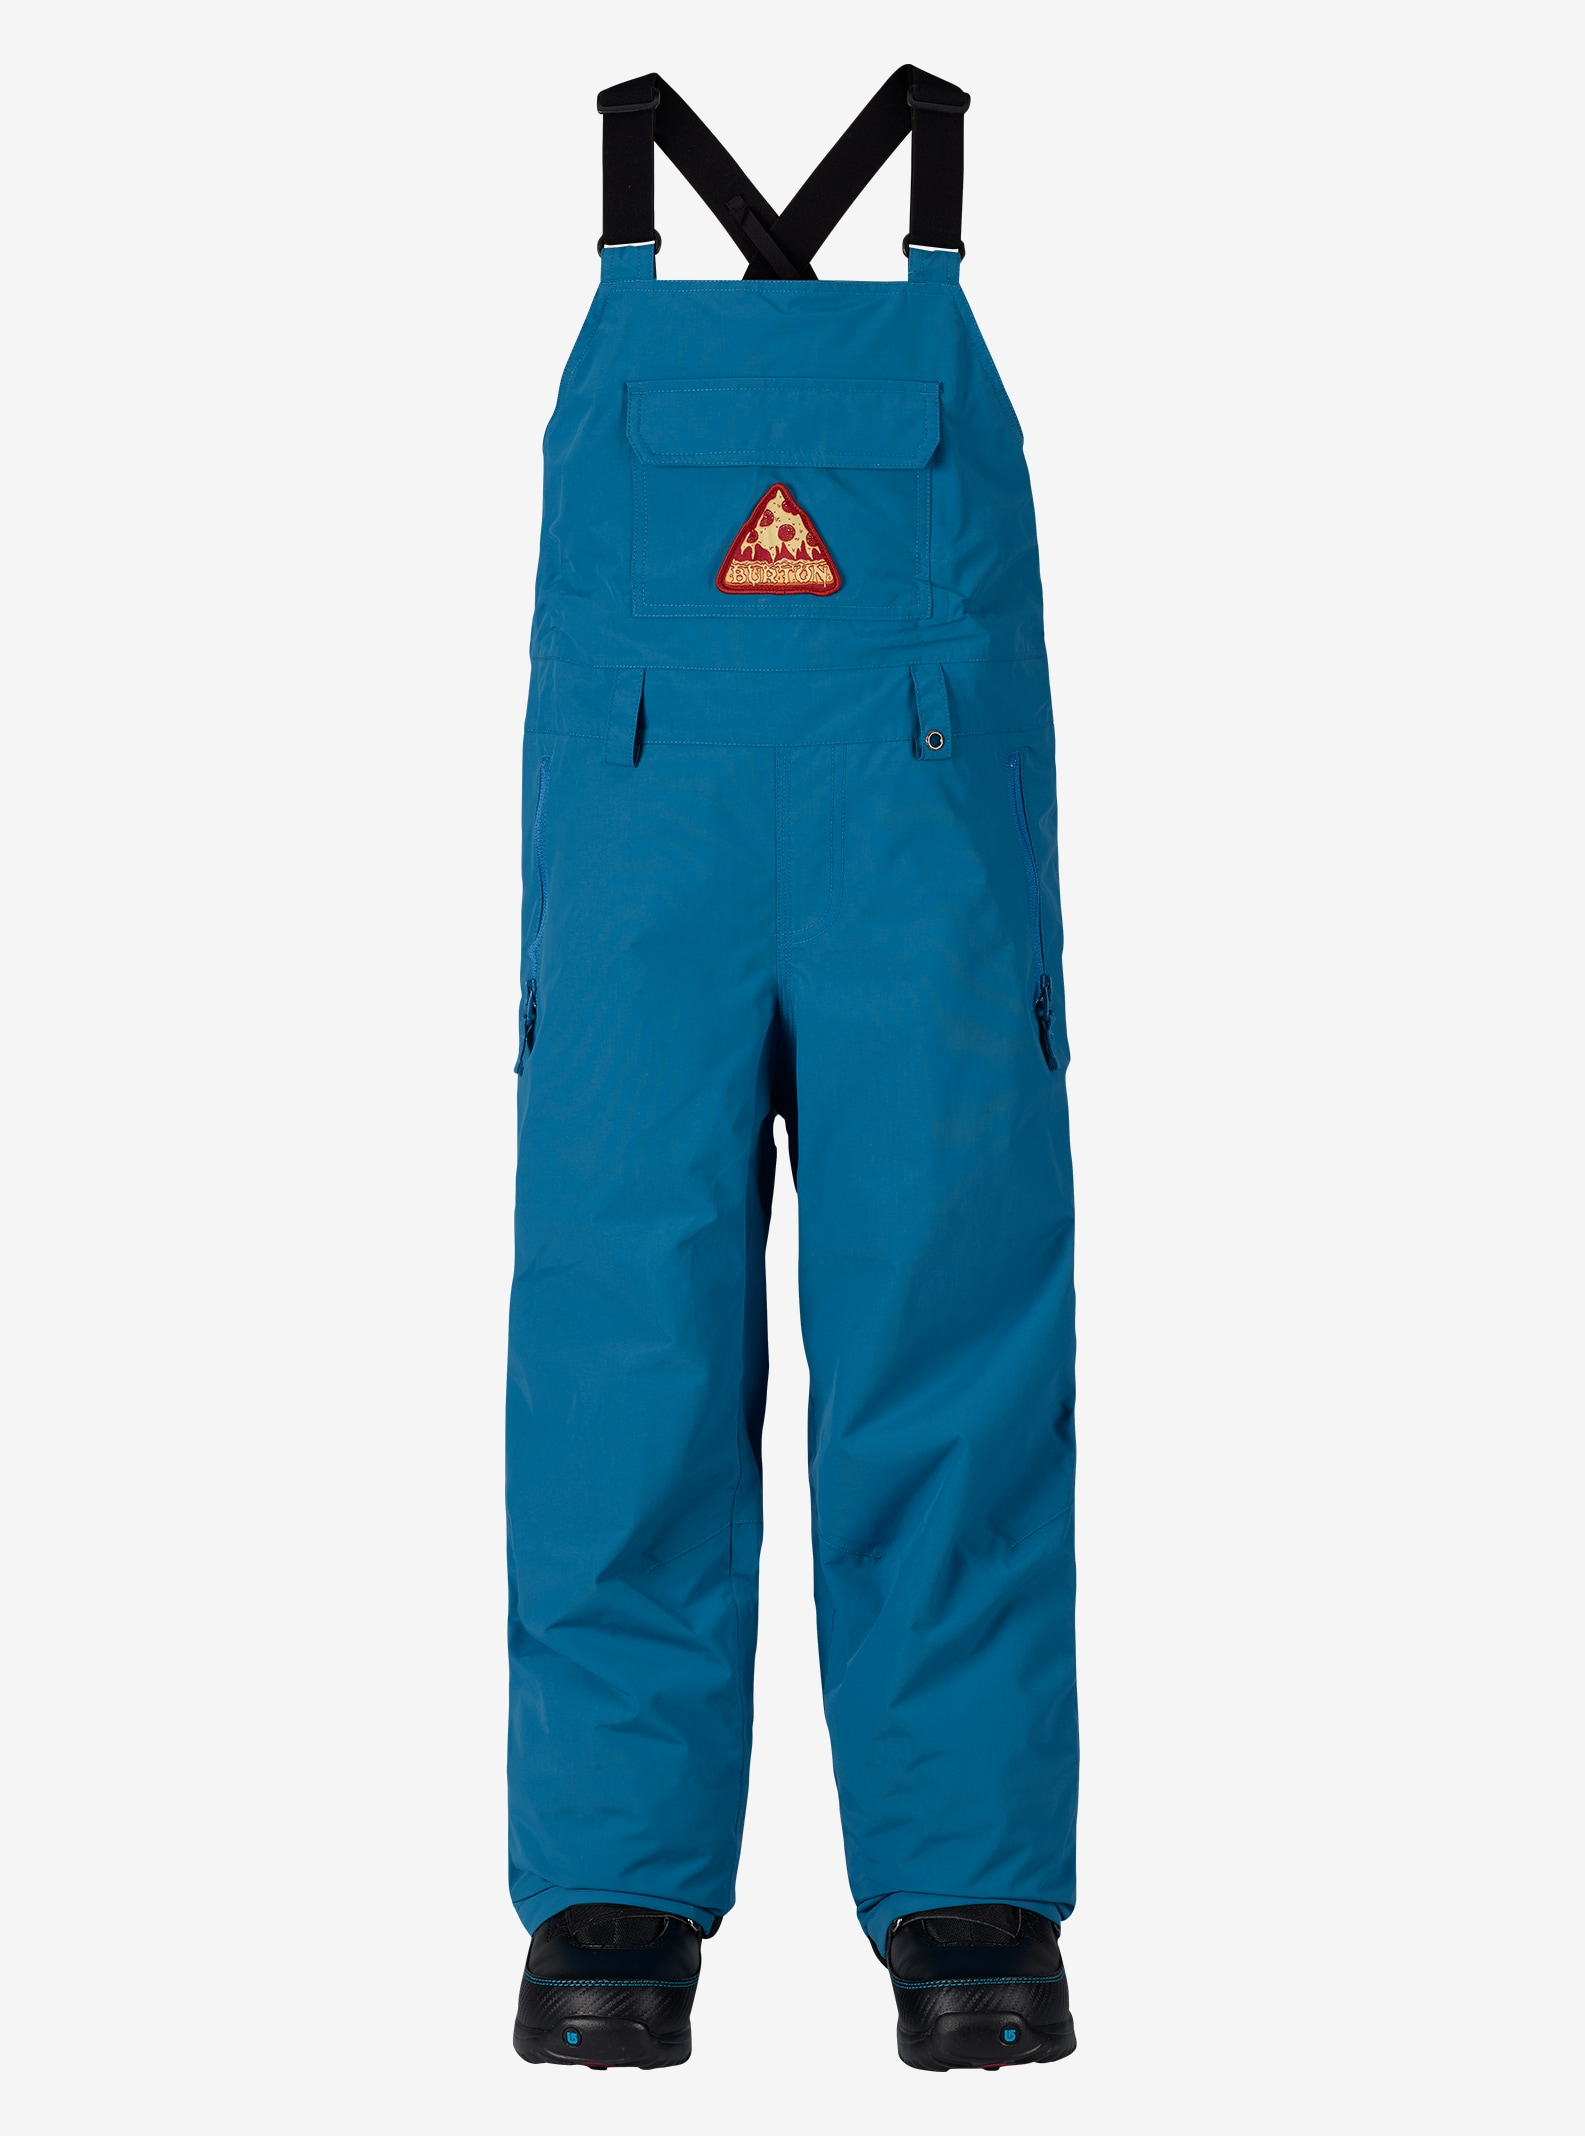 Kids' Burton Skylar Bib Pant shown in Mountaineer